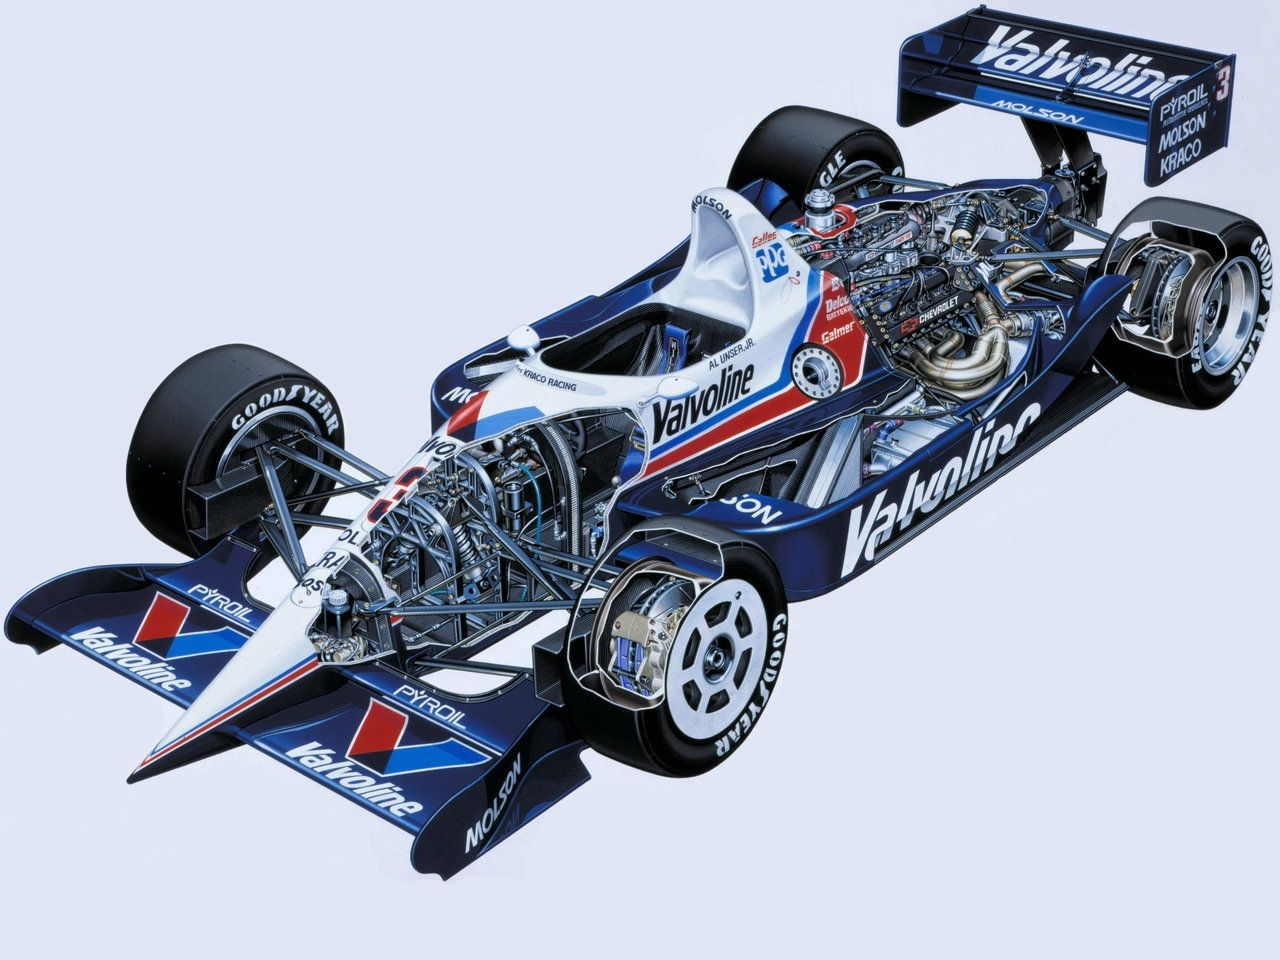 27+ Images of indy cars inspirations